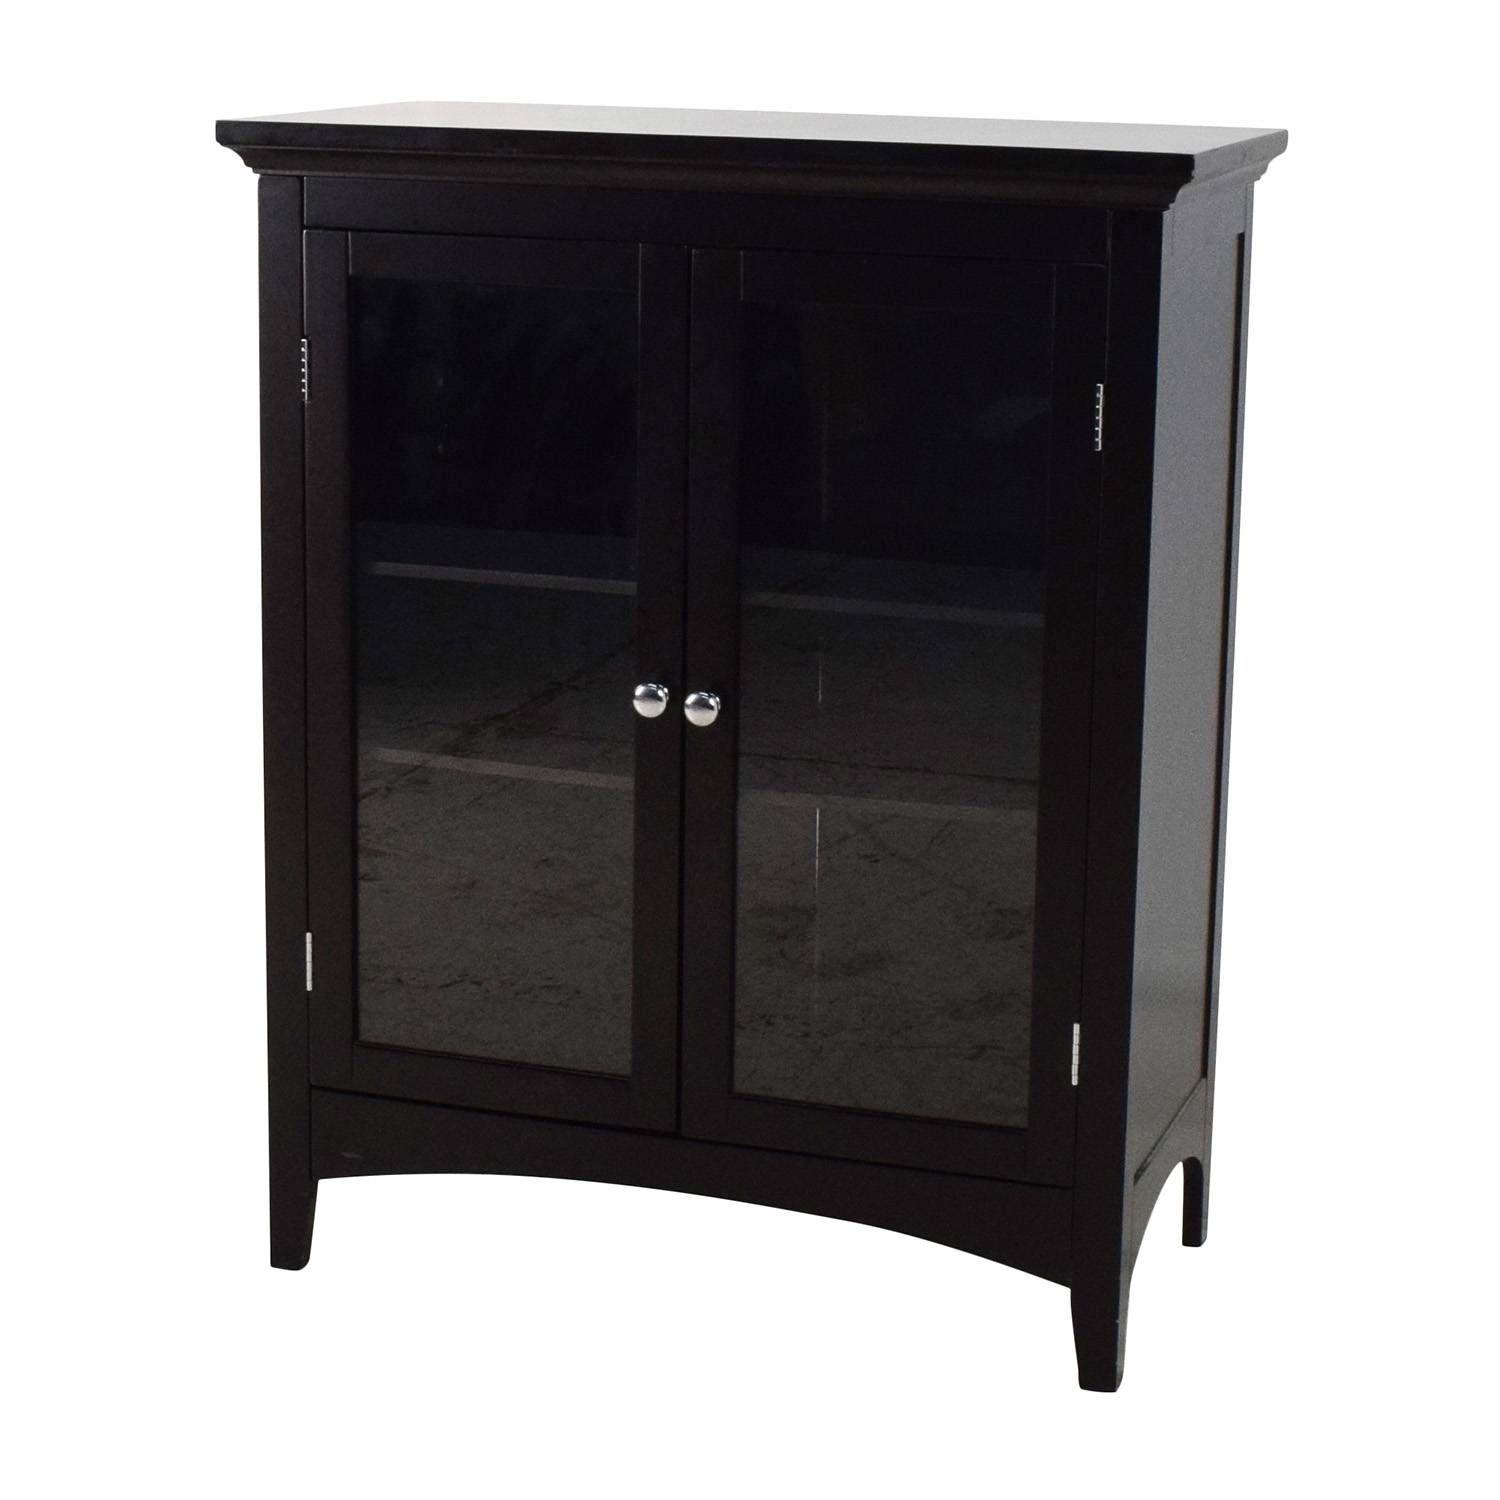 89% Off   Dark Brown Glass Door Cabinet / Storage Within Dark Brown Sideboards (Photo 16 of 30)